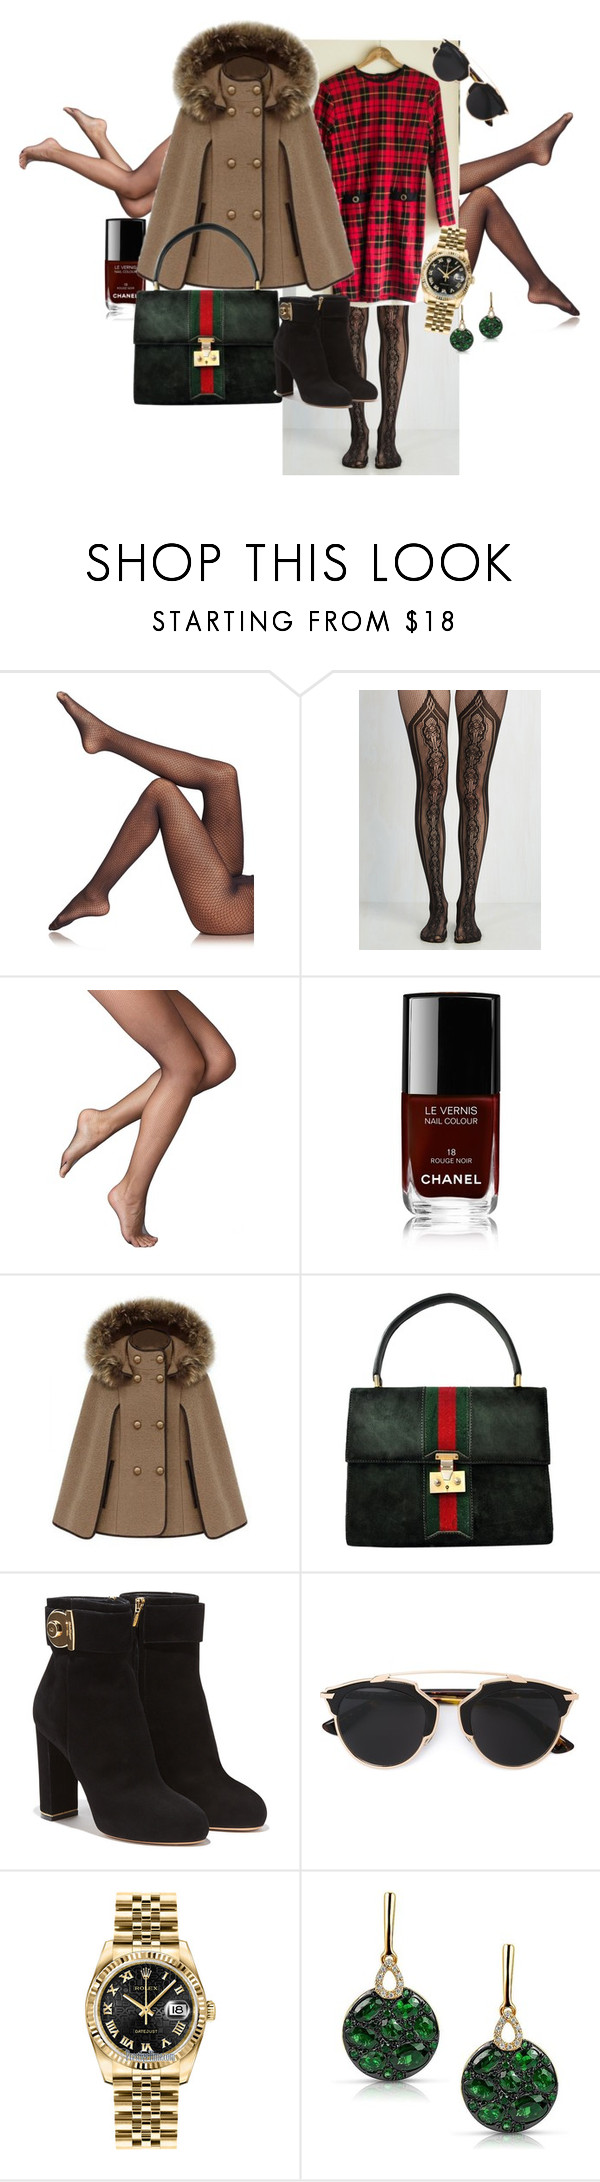 """""""Winter wear"""" by mandajenae ❤ liked on Polyvore featuring Fogal, Ralph Lauren, Chanel, Gucci, Salvatore Ferragamo, Christian Dior, Rolex, Marco Moore and vintage"""